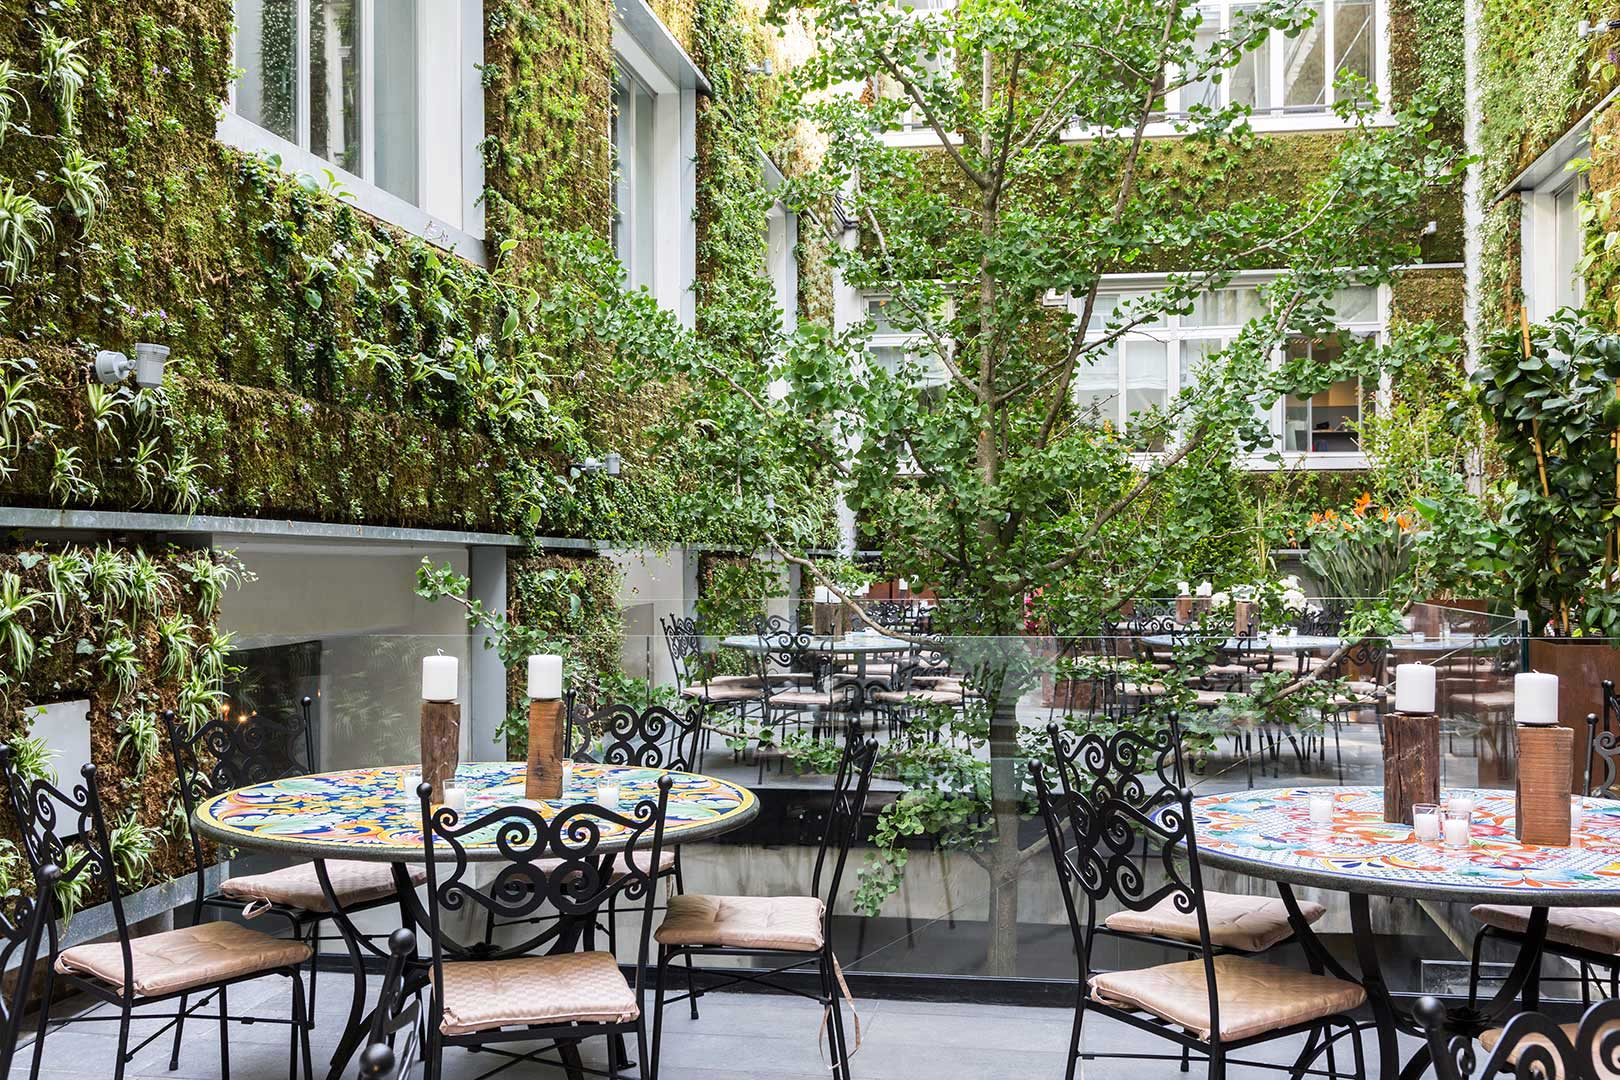 The 10 best restaurants with open courtyards in Milan